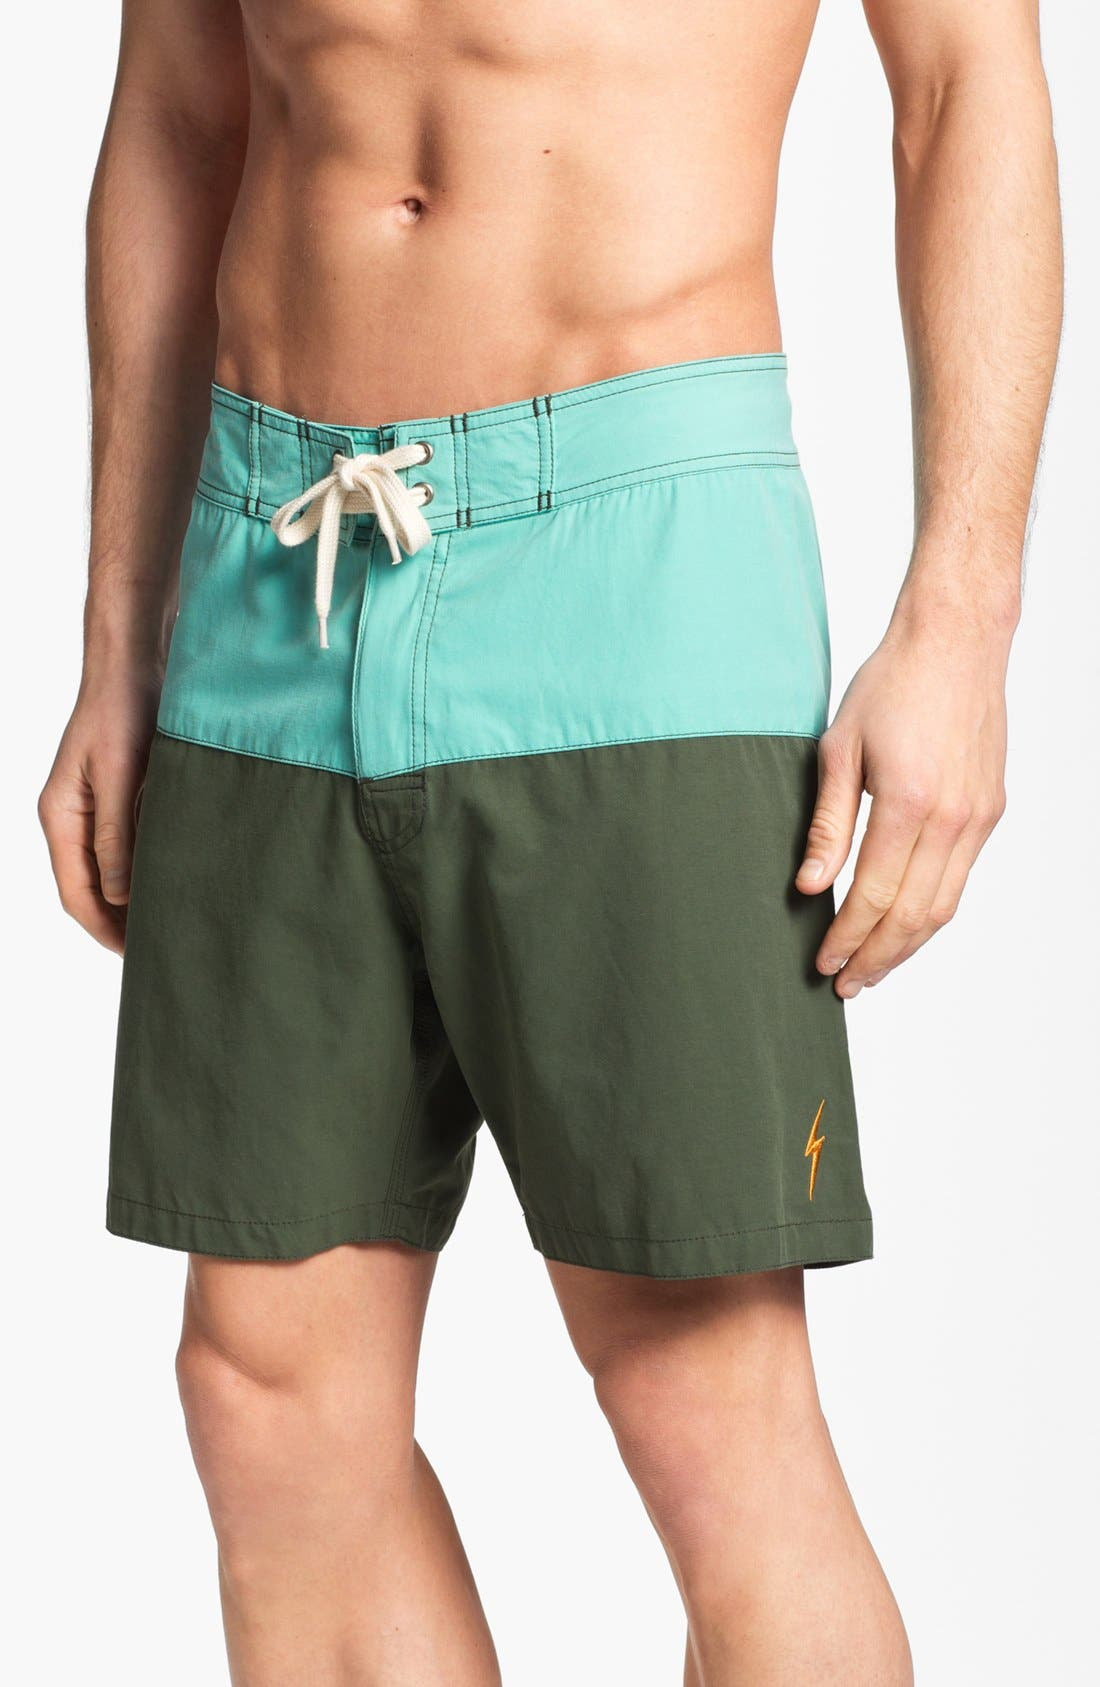 Alternate Image 1 Selected - Lightning Bolt 'Surfari' Board Shorts